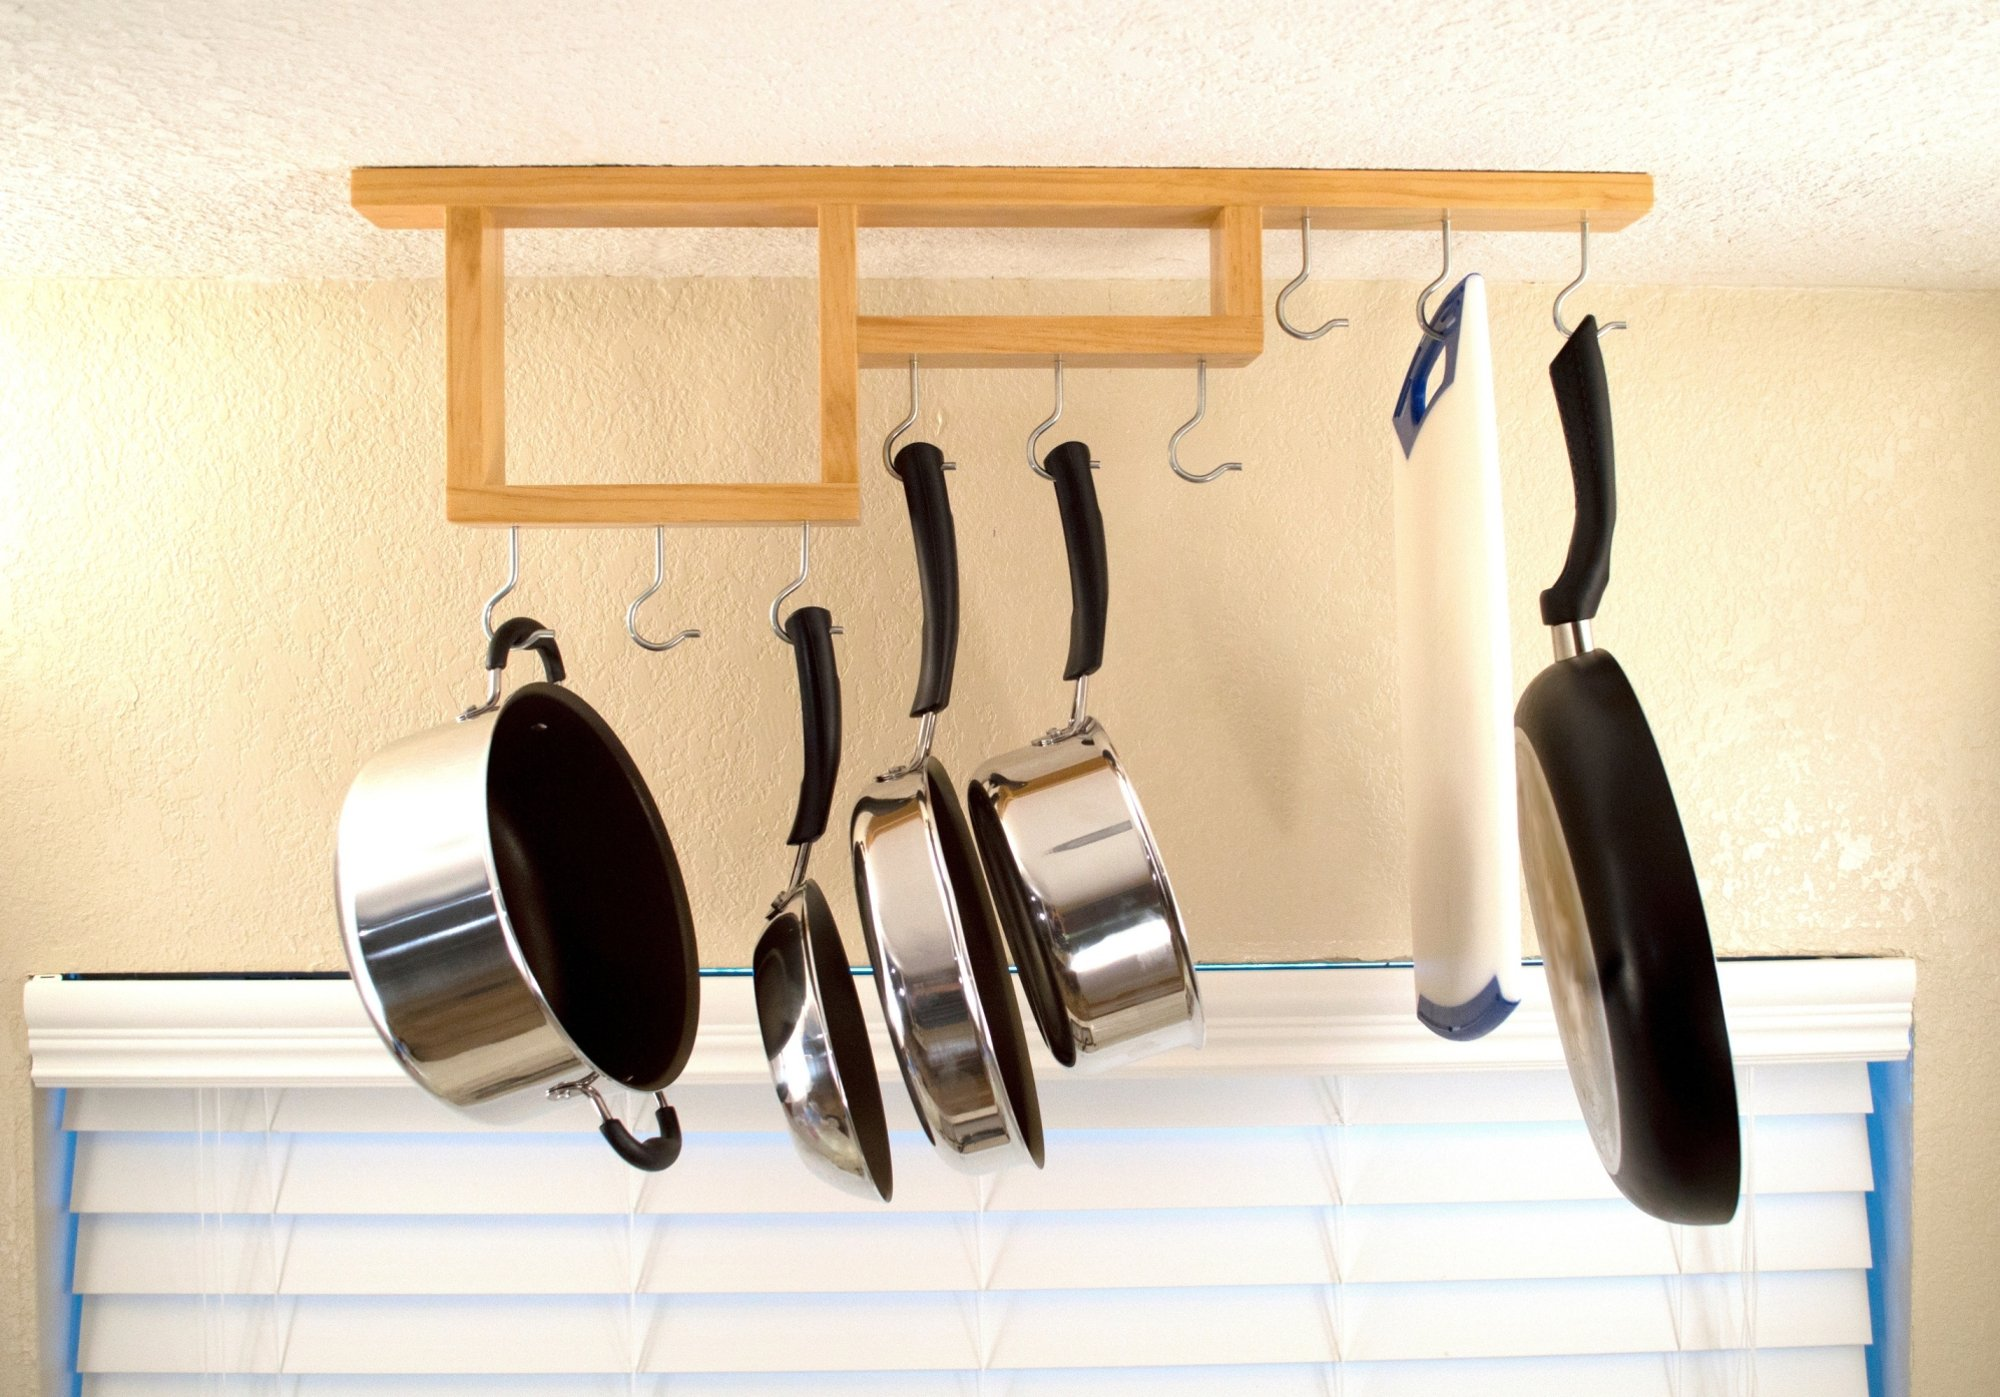 Pot Rack: Easy to Reach Ceiling Mount Solid-Wood Pan Hanger by HomeHarmony by HomeHarmony (Image #4)